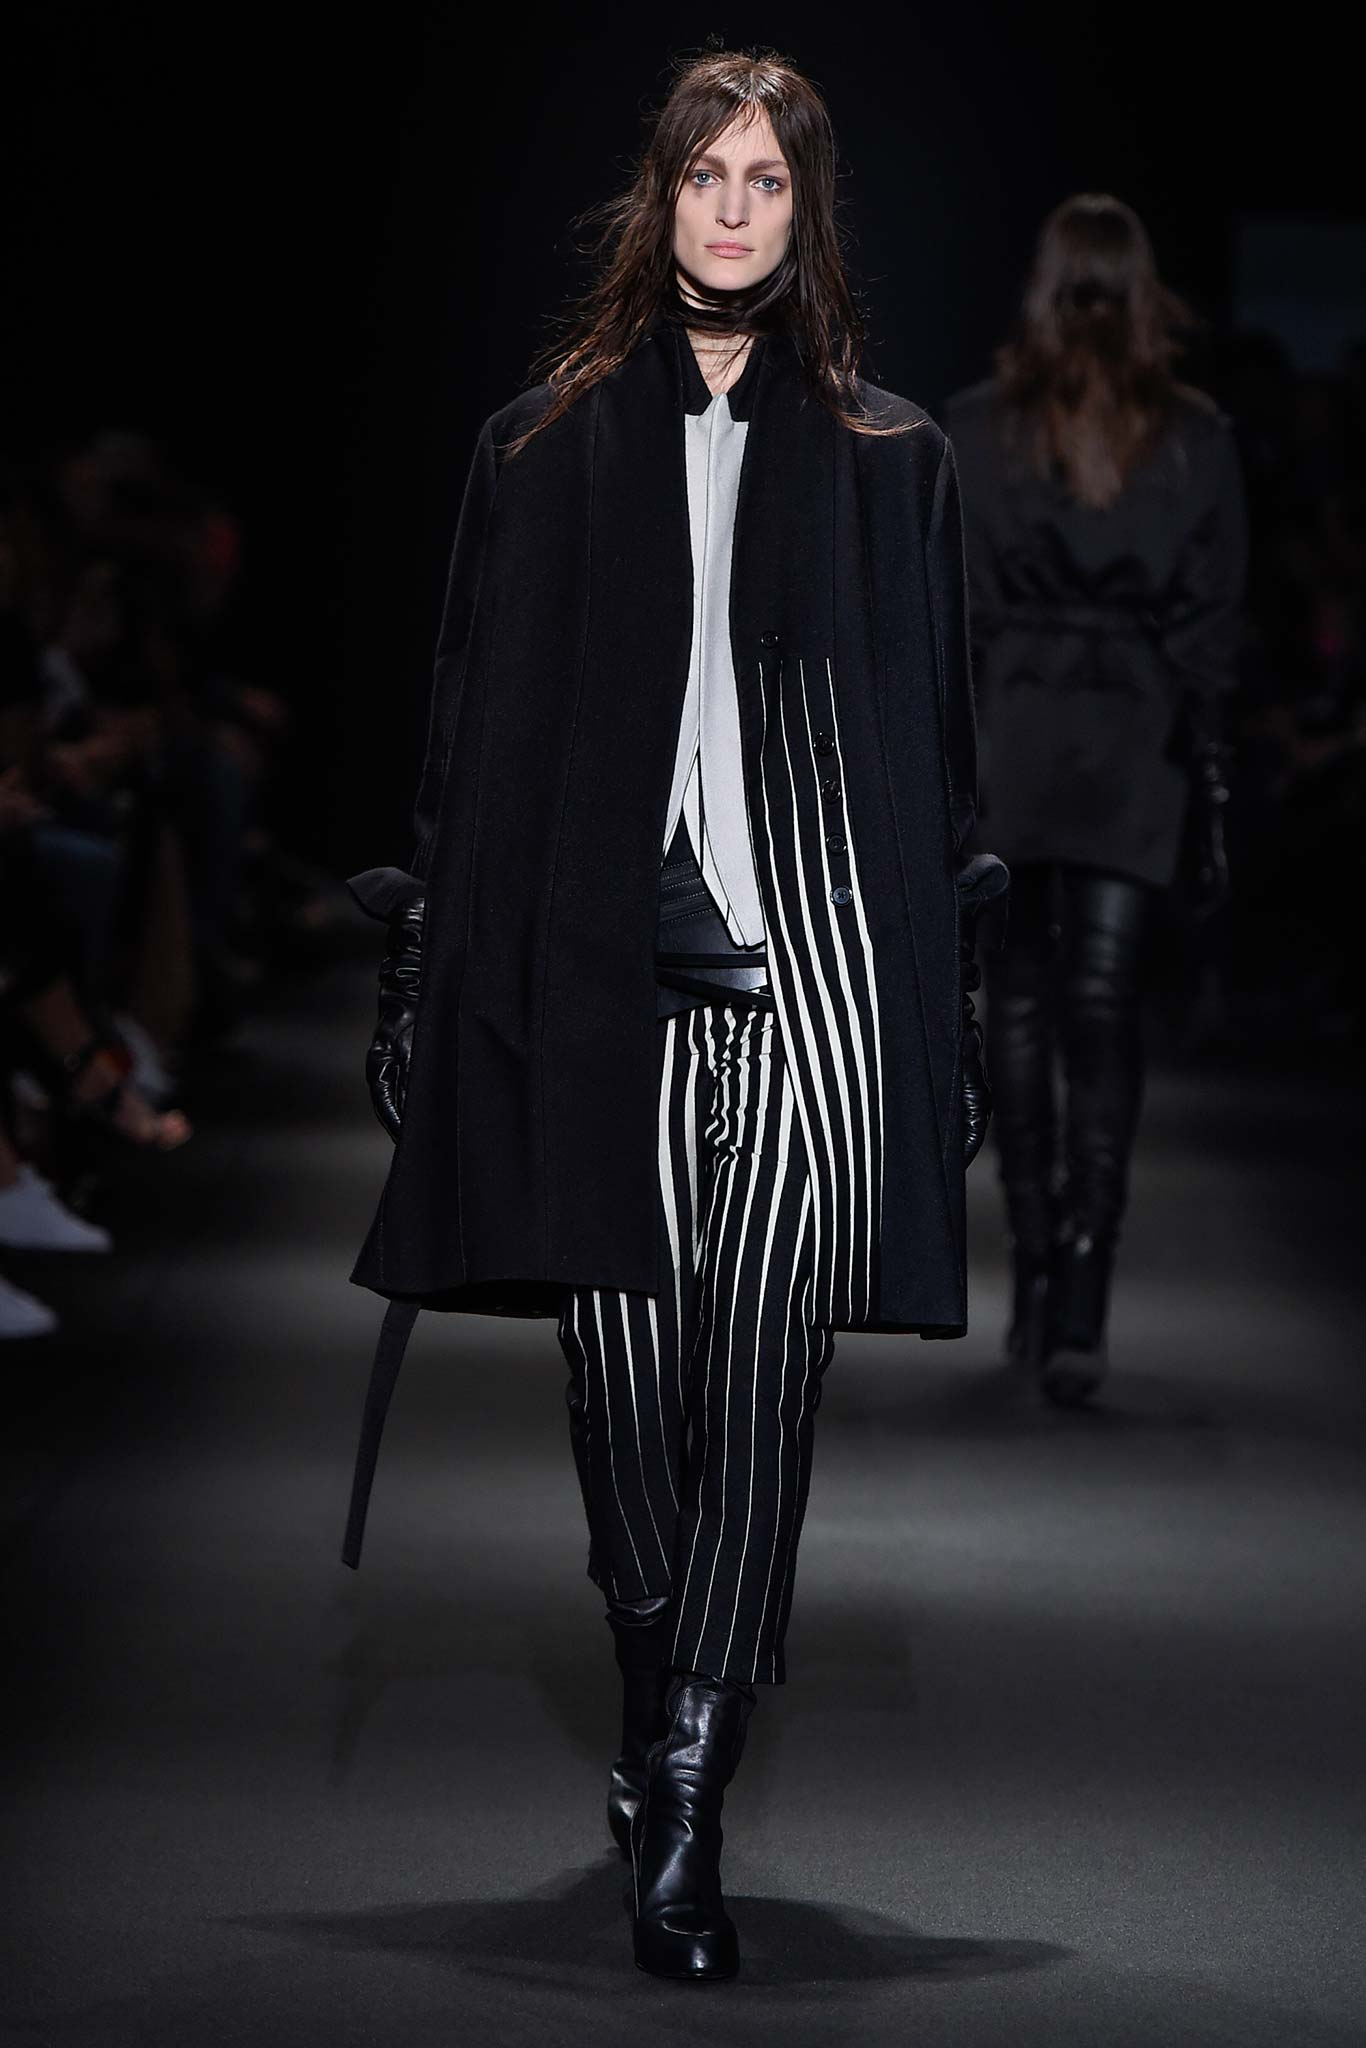 Complete runway photos from Ann Demeulemeester Fall '15 are here: http://t.co/TpMzoK70lN #PFW http://t.co/OymNRO8gsB